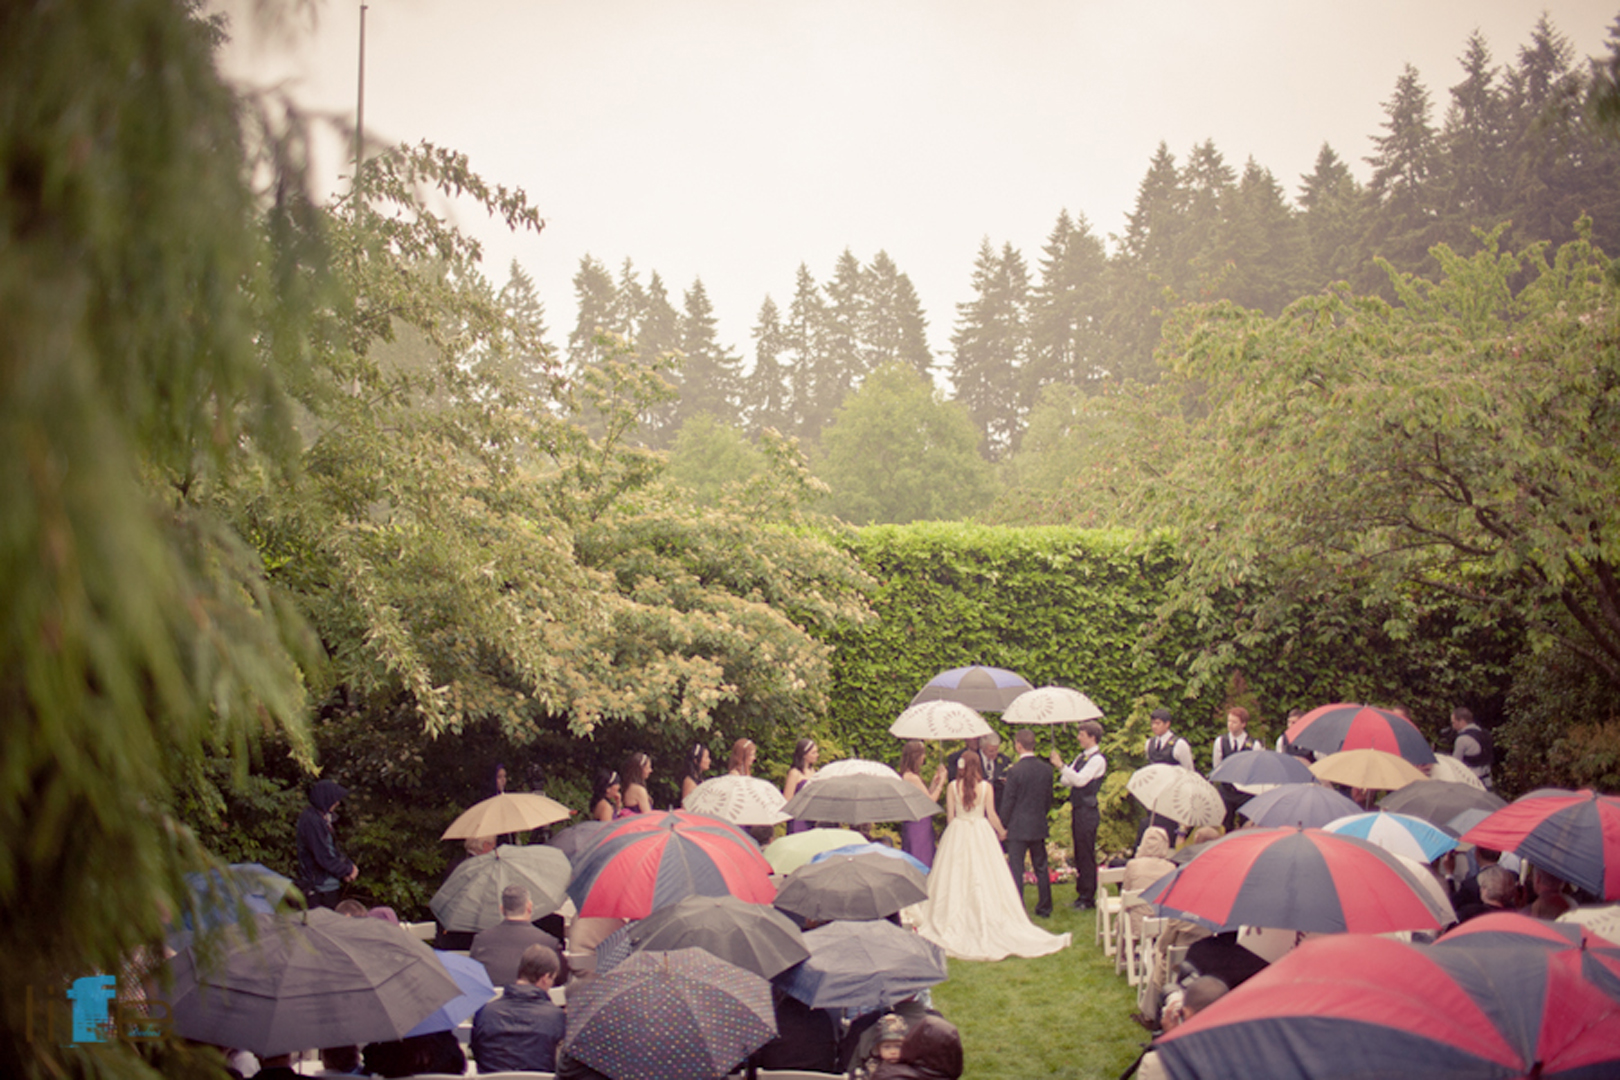 Wedding Photographer Anna and Brian Wedding Photos in Seattle by Life Studios Inc.